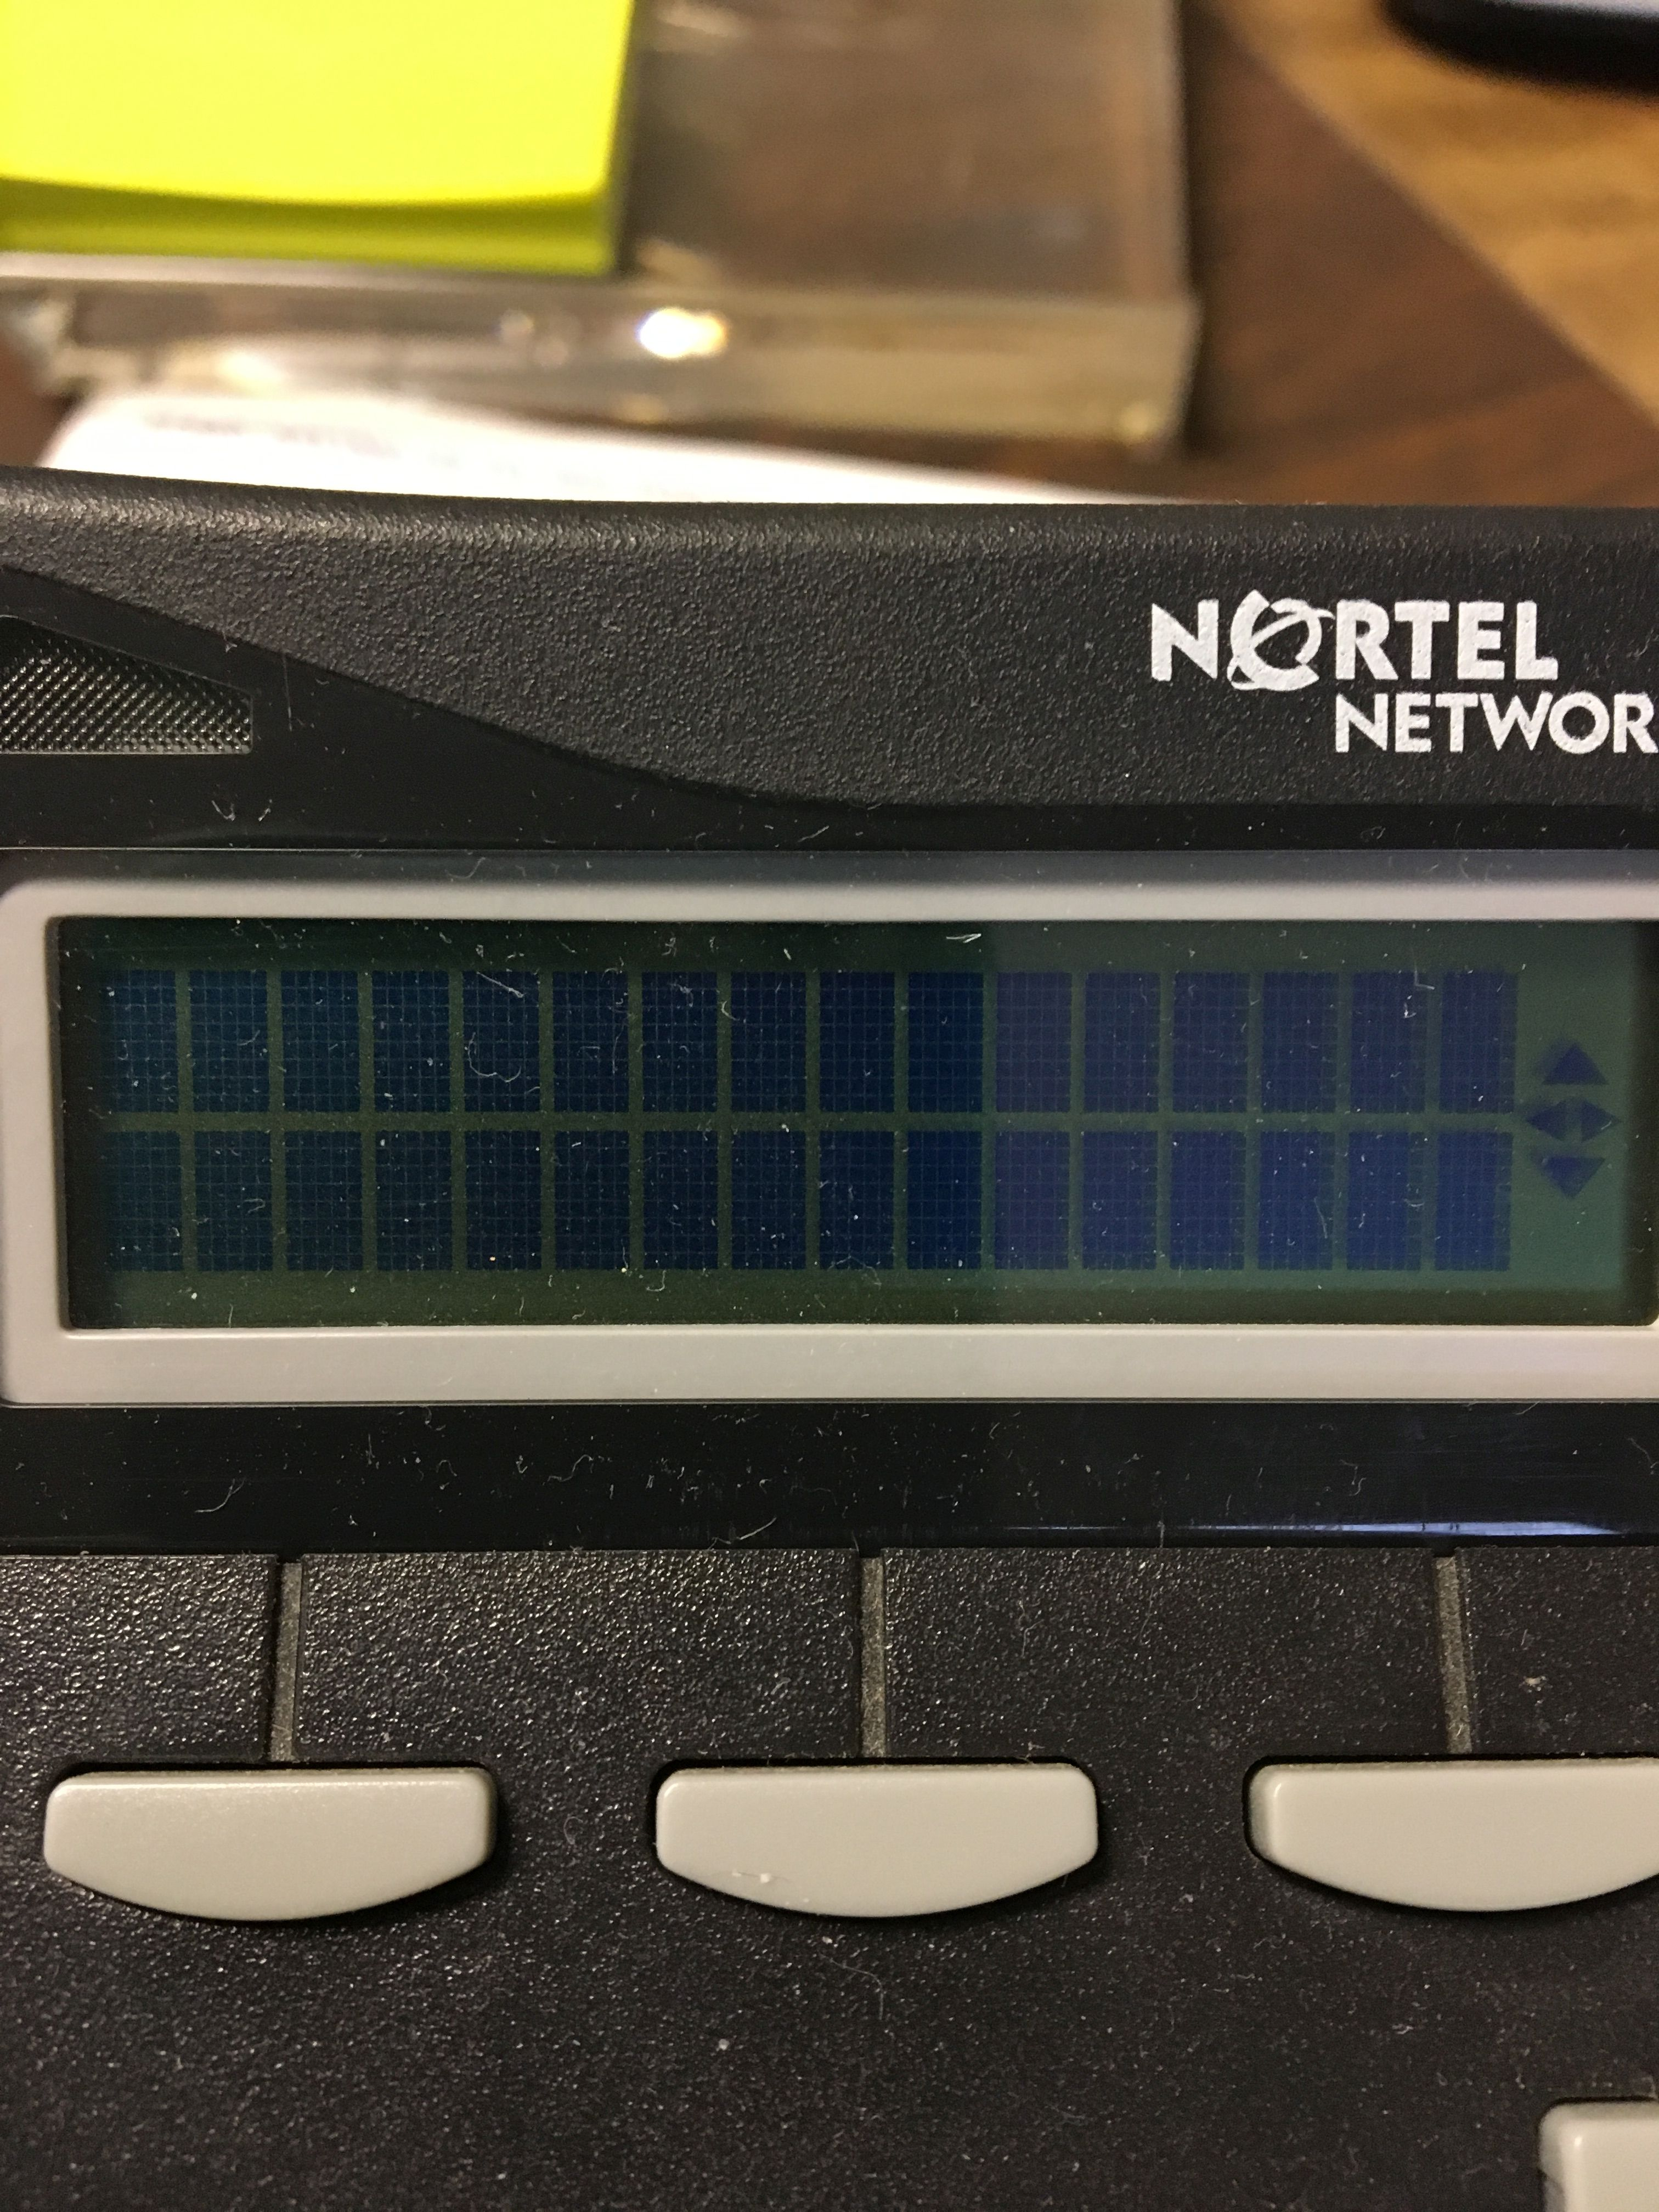 My display screen on my T7316E Nortel phone is only